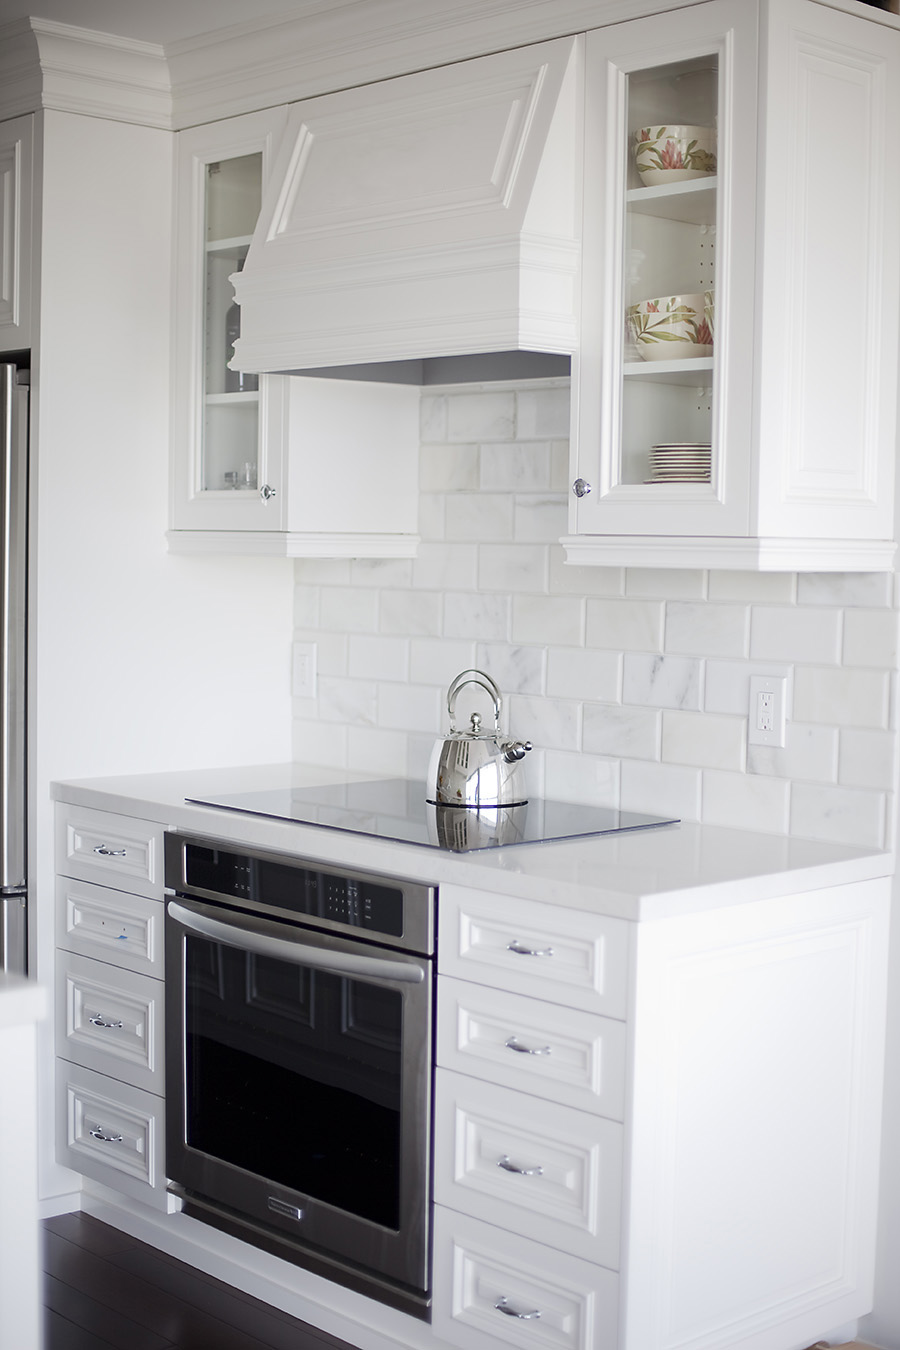 20150219_B56_Shores_Kitchen+Bathroom__3.jpg